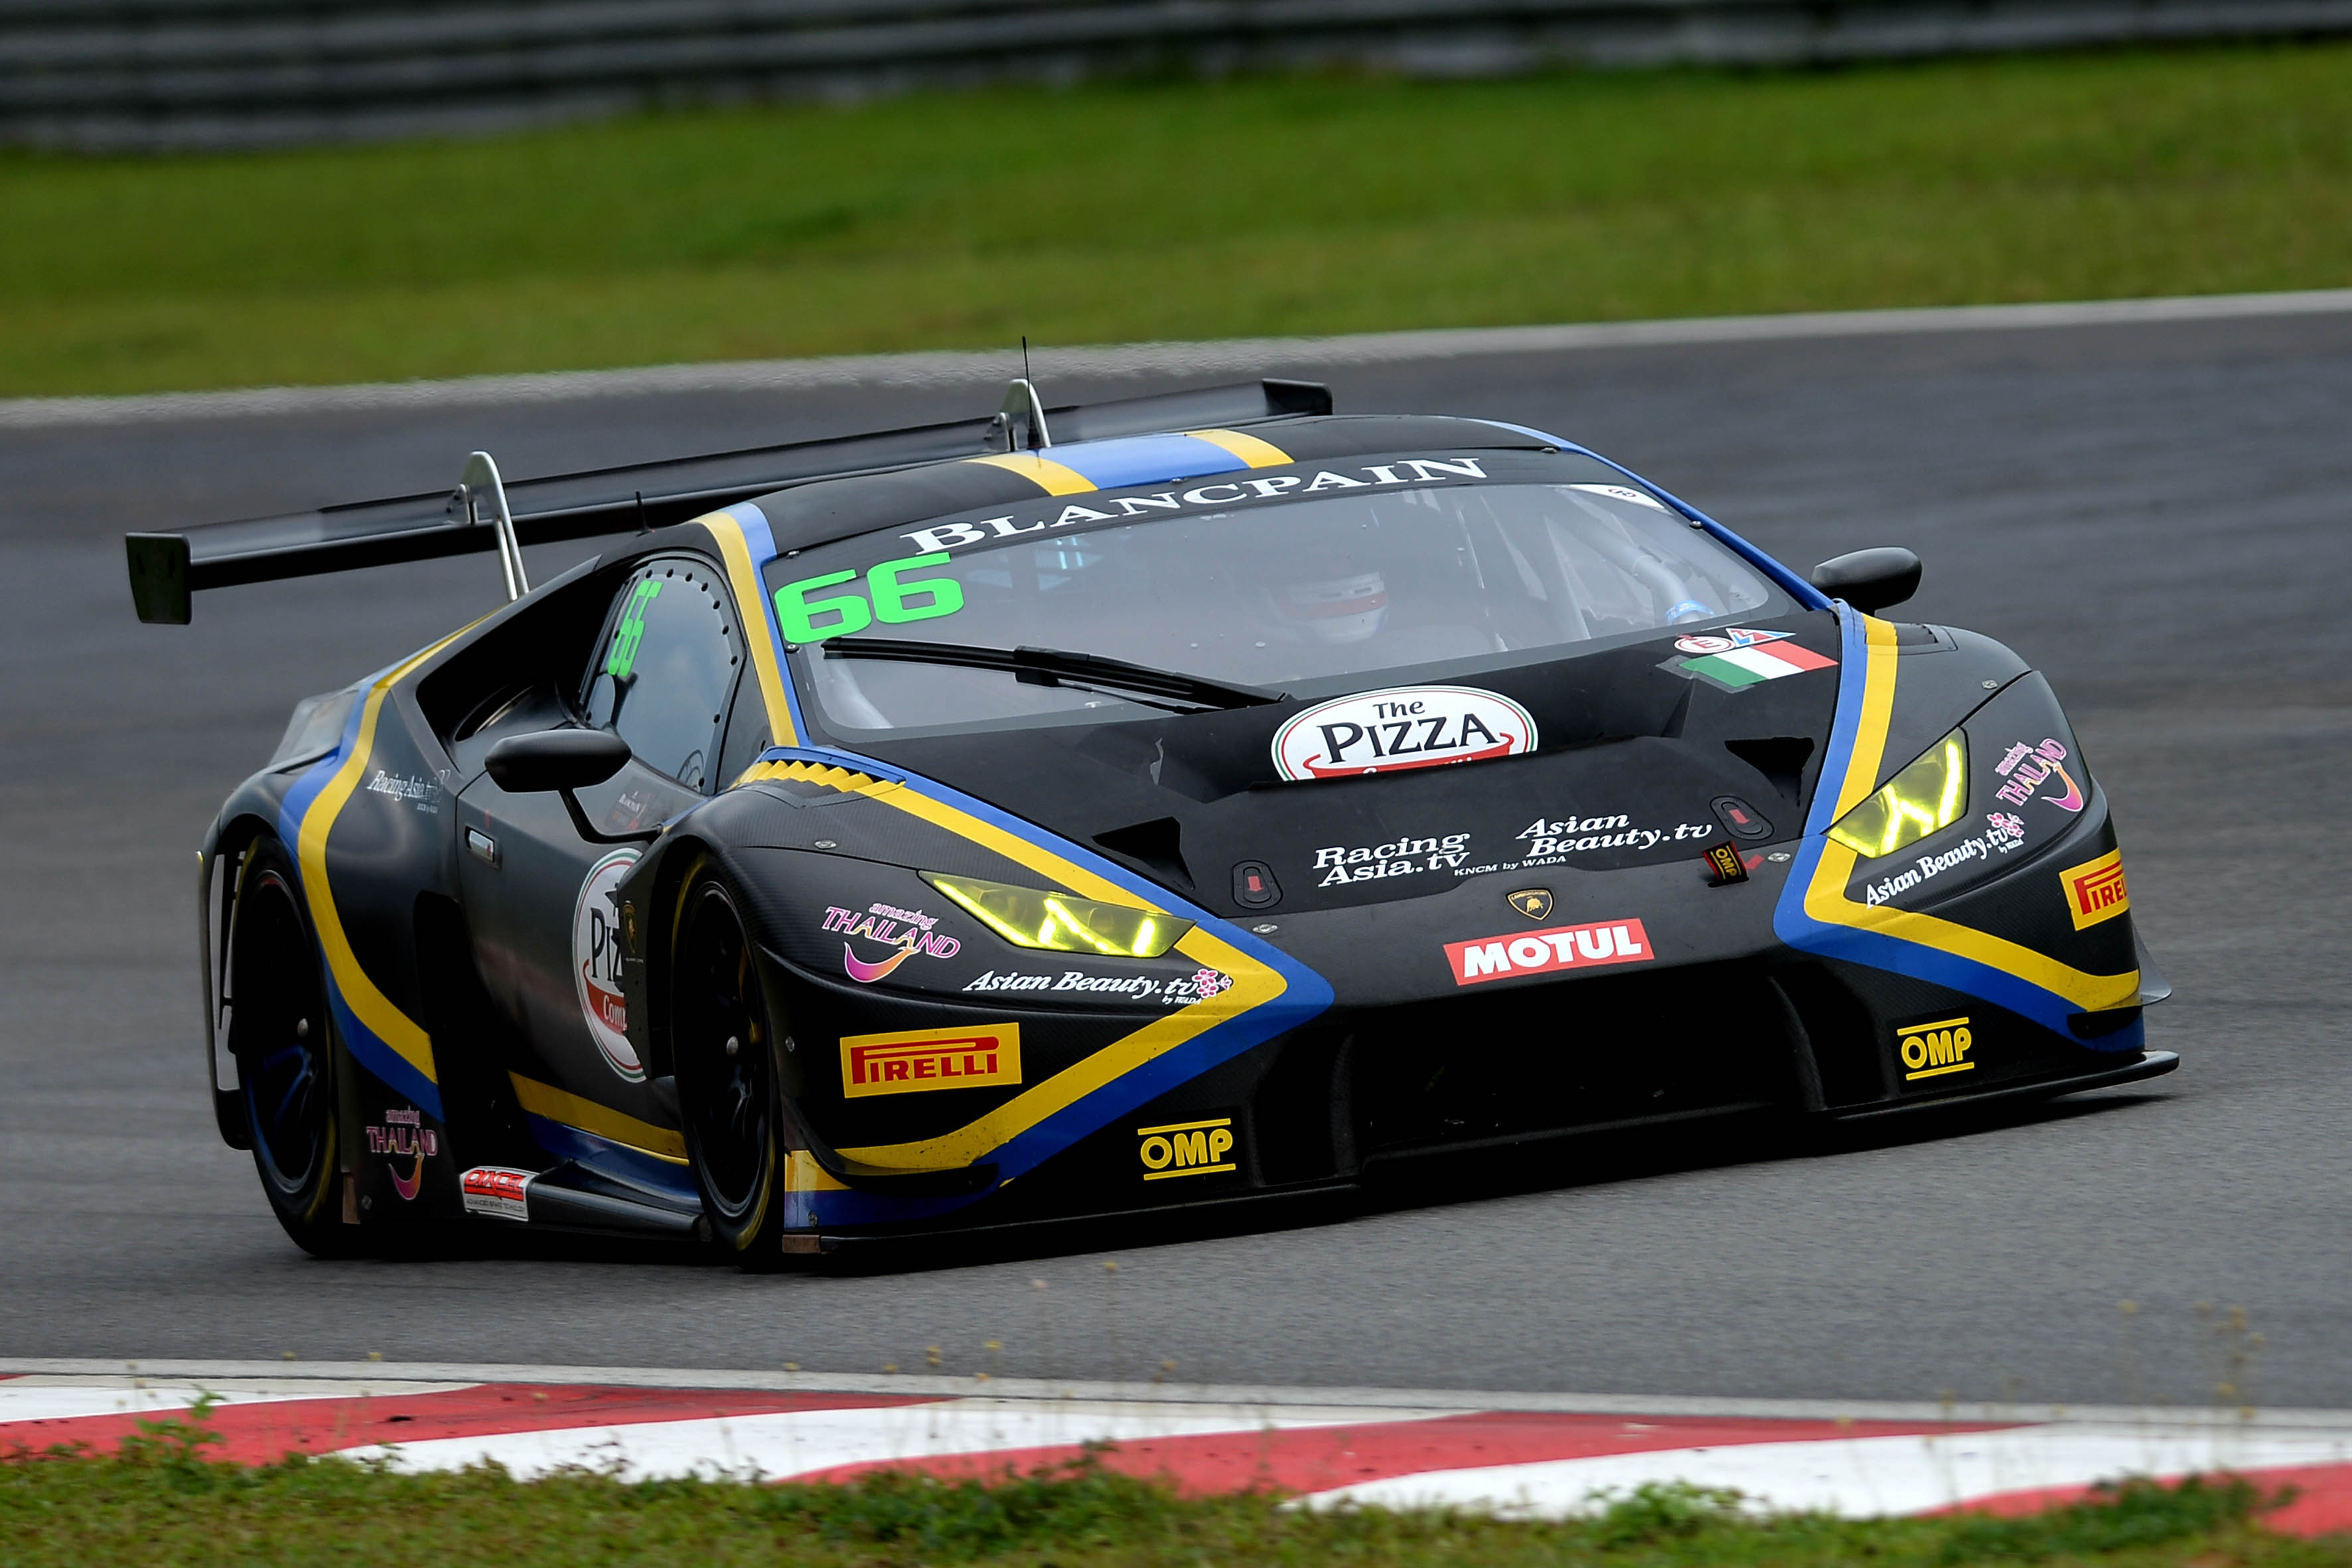 POINTS FINISH FOR KODRIC AND STUVIK IN GT3 DEBUT